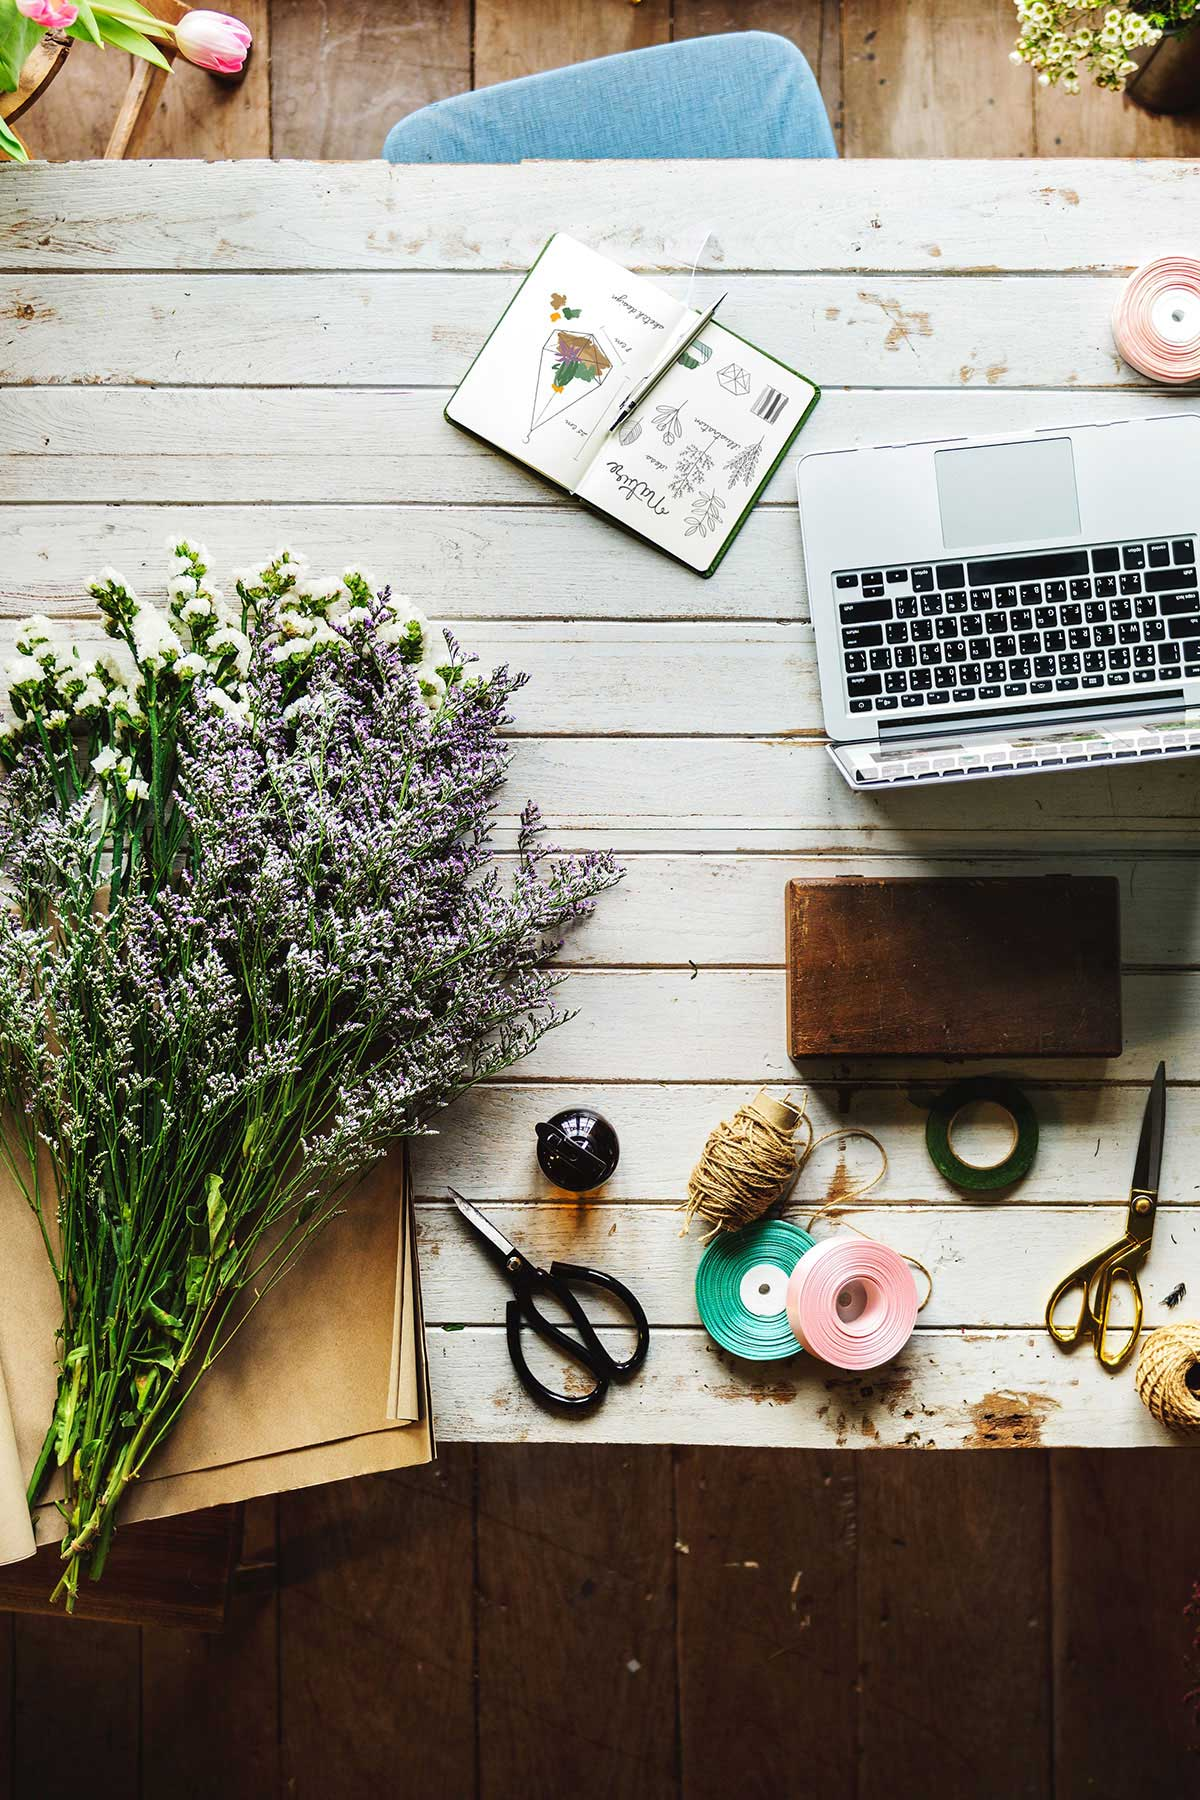 5 Powerful Benefits Of Blogging For Your Small Business